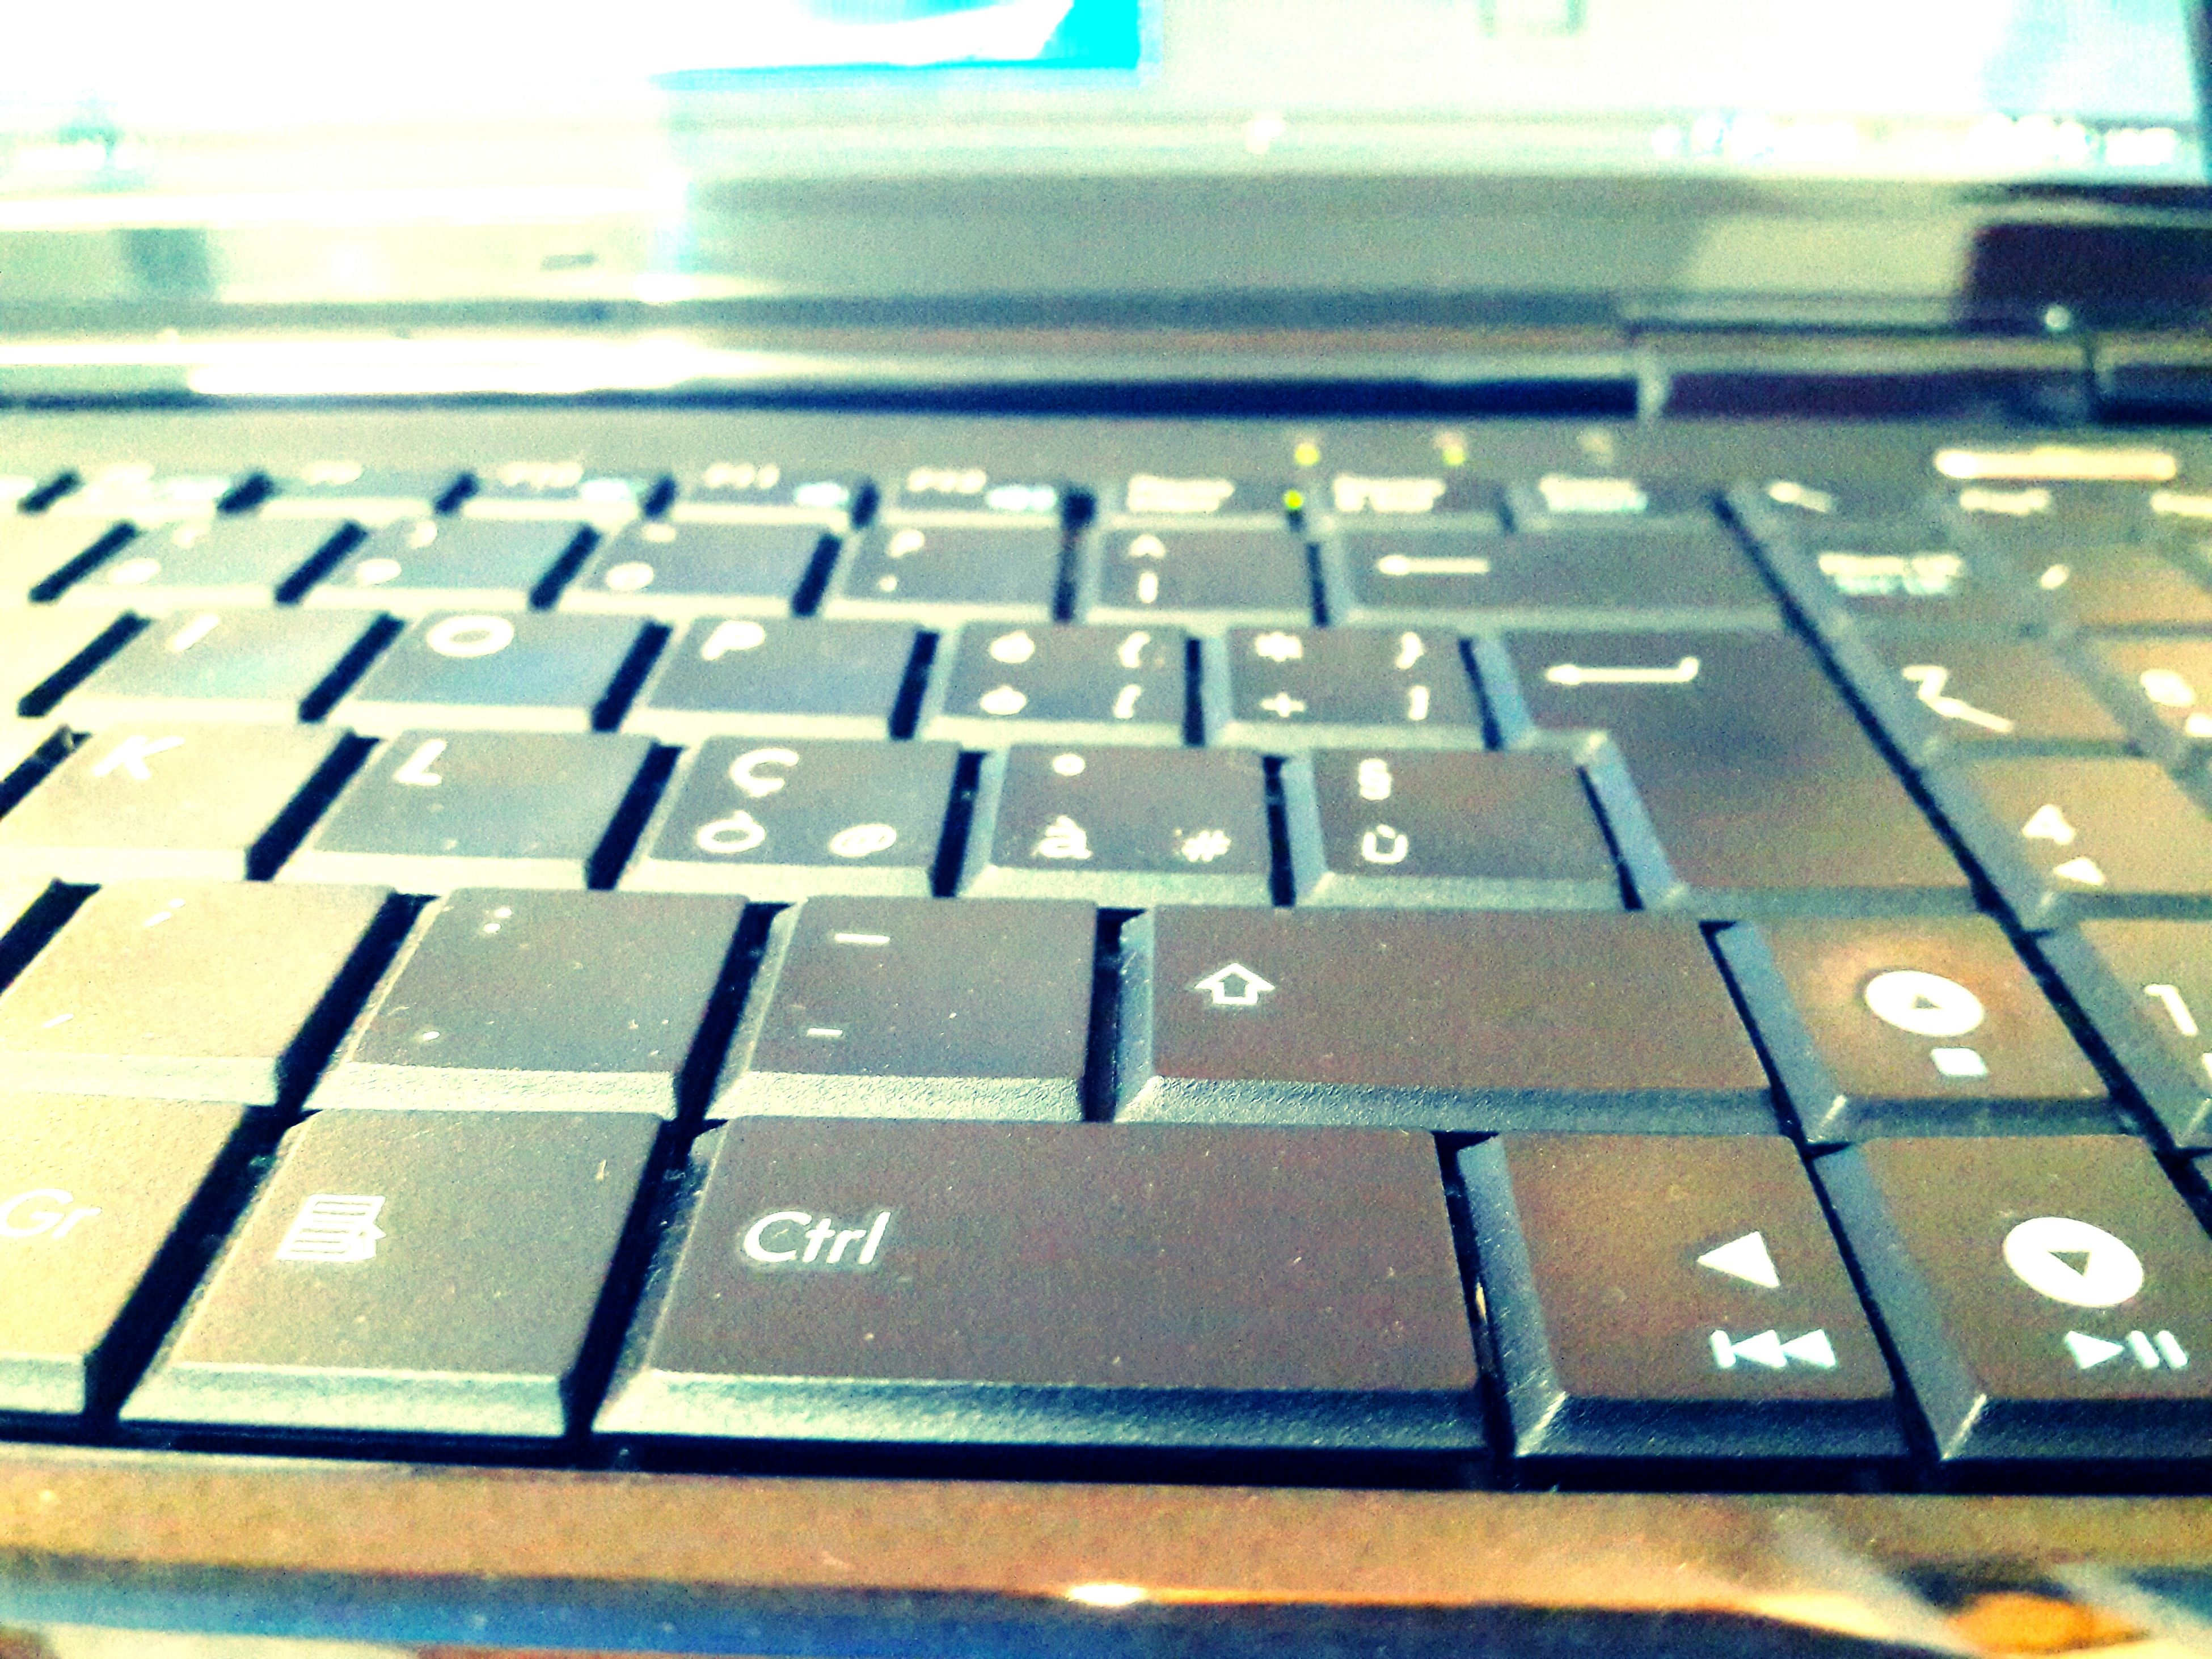 indoors, communication, text, number, western script, close-up, technology, capital letter, computer keyboard, selective focus, focus on foreground, connection, no people, alphabet, wireless technology, laptop, control, pattern, blue, high angle view